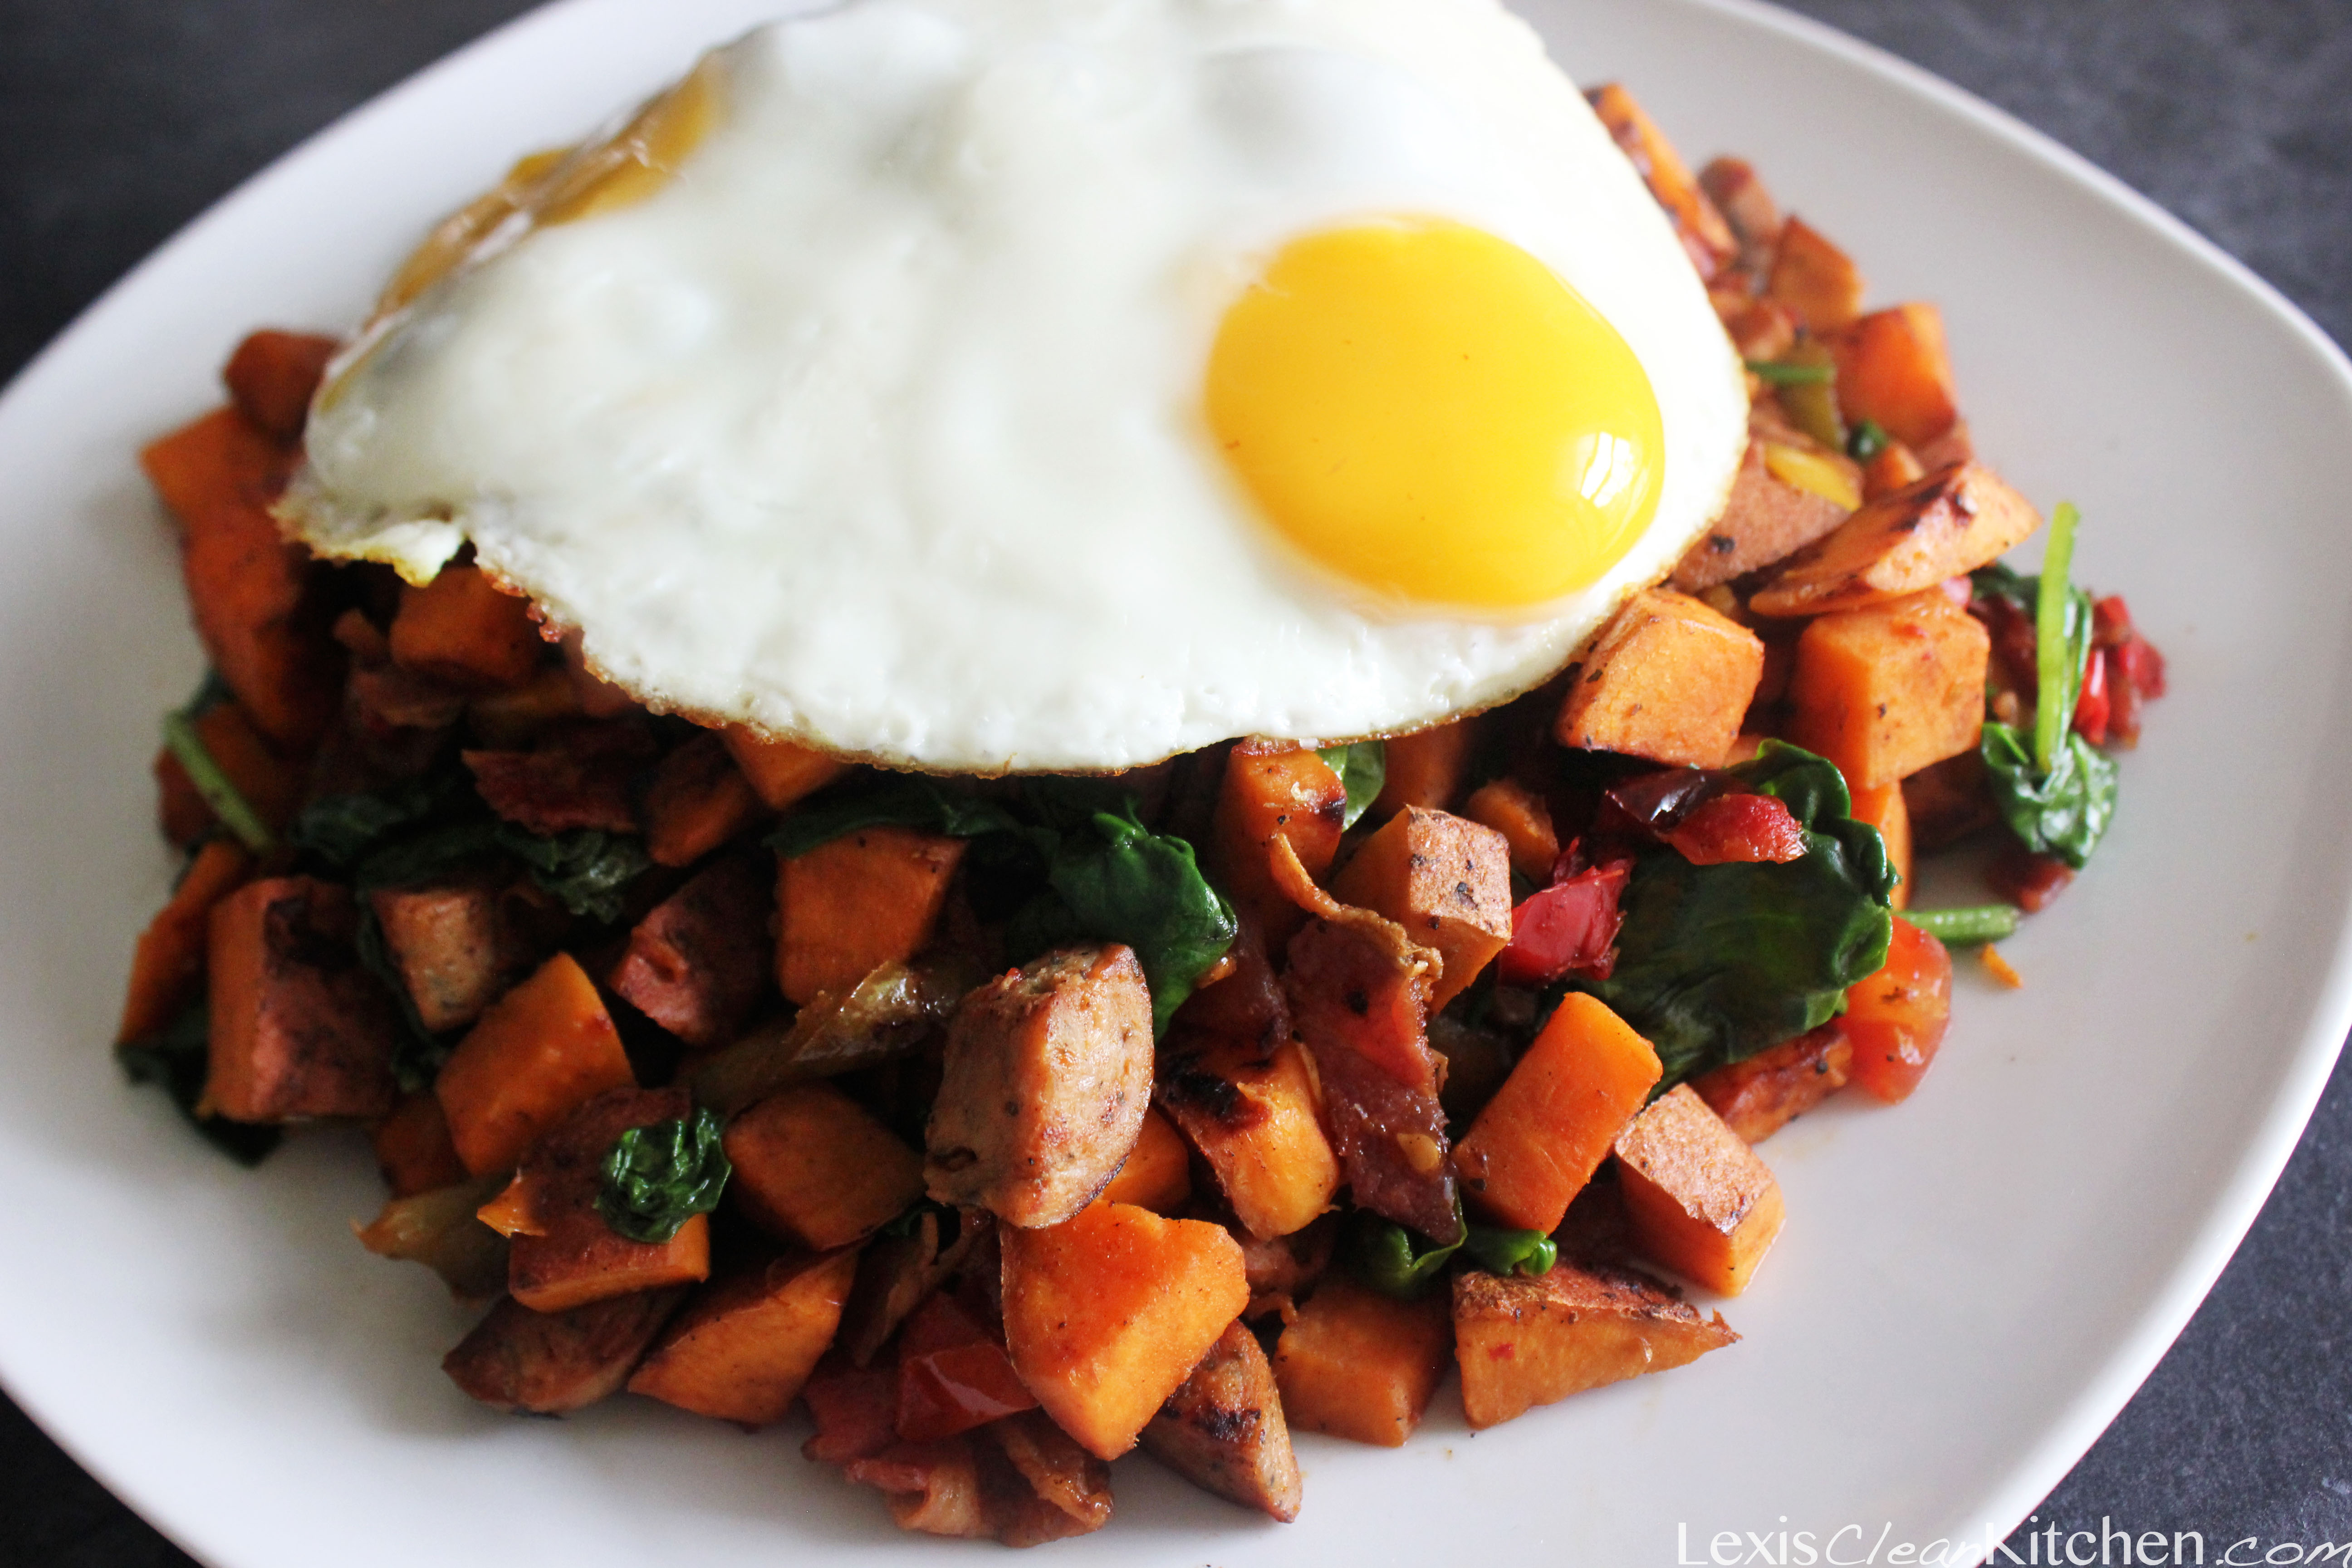 15 Breakfasts To Balance Hormones, Boost Metabolism and Reduce Cravings